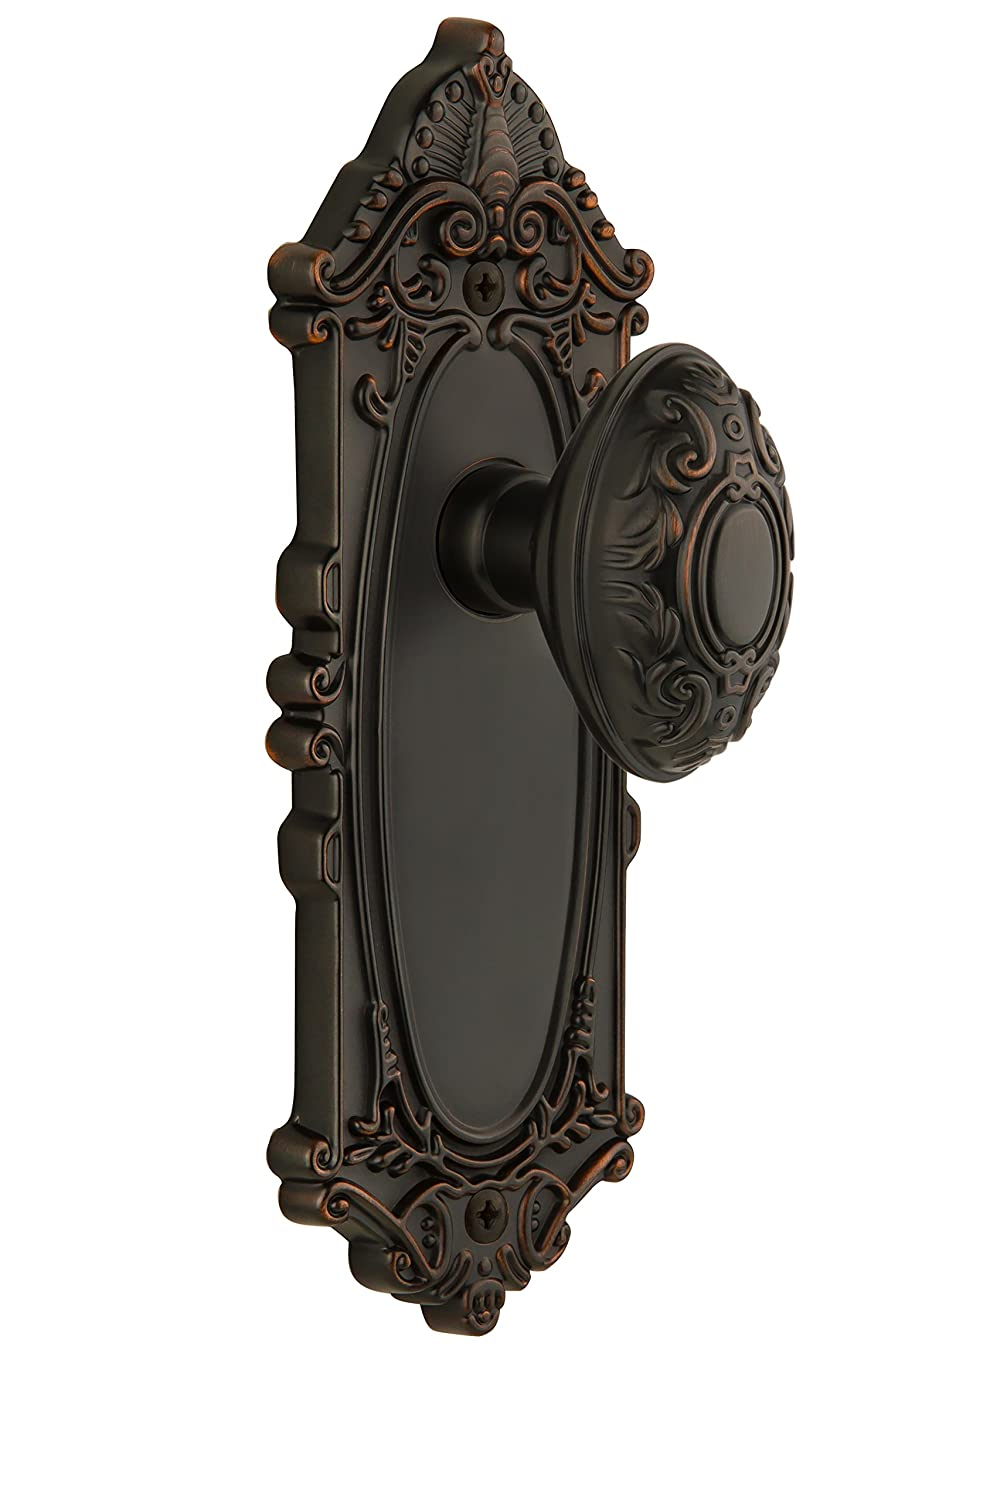 Grandeur GS40-GVCGVC-TB Grande Victorian Longplate with Grande Victorian Knob, Privacy, Timeless Bronze Finish by Grandeur B0017J88CK